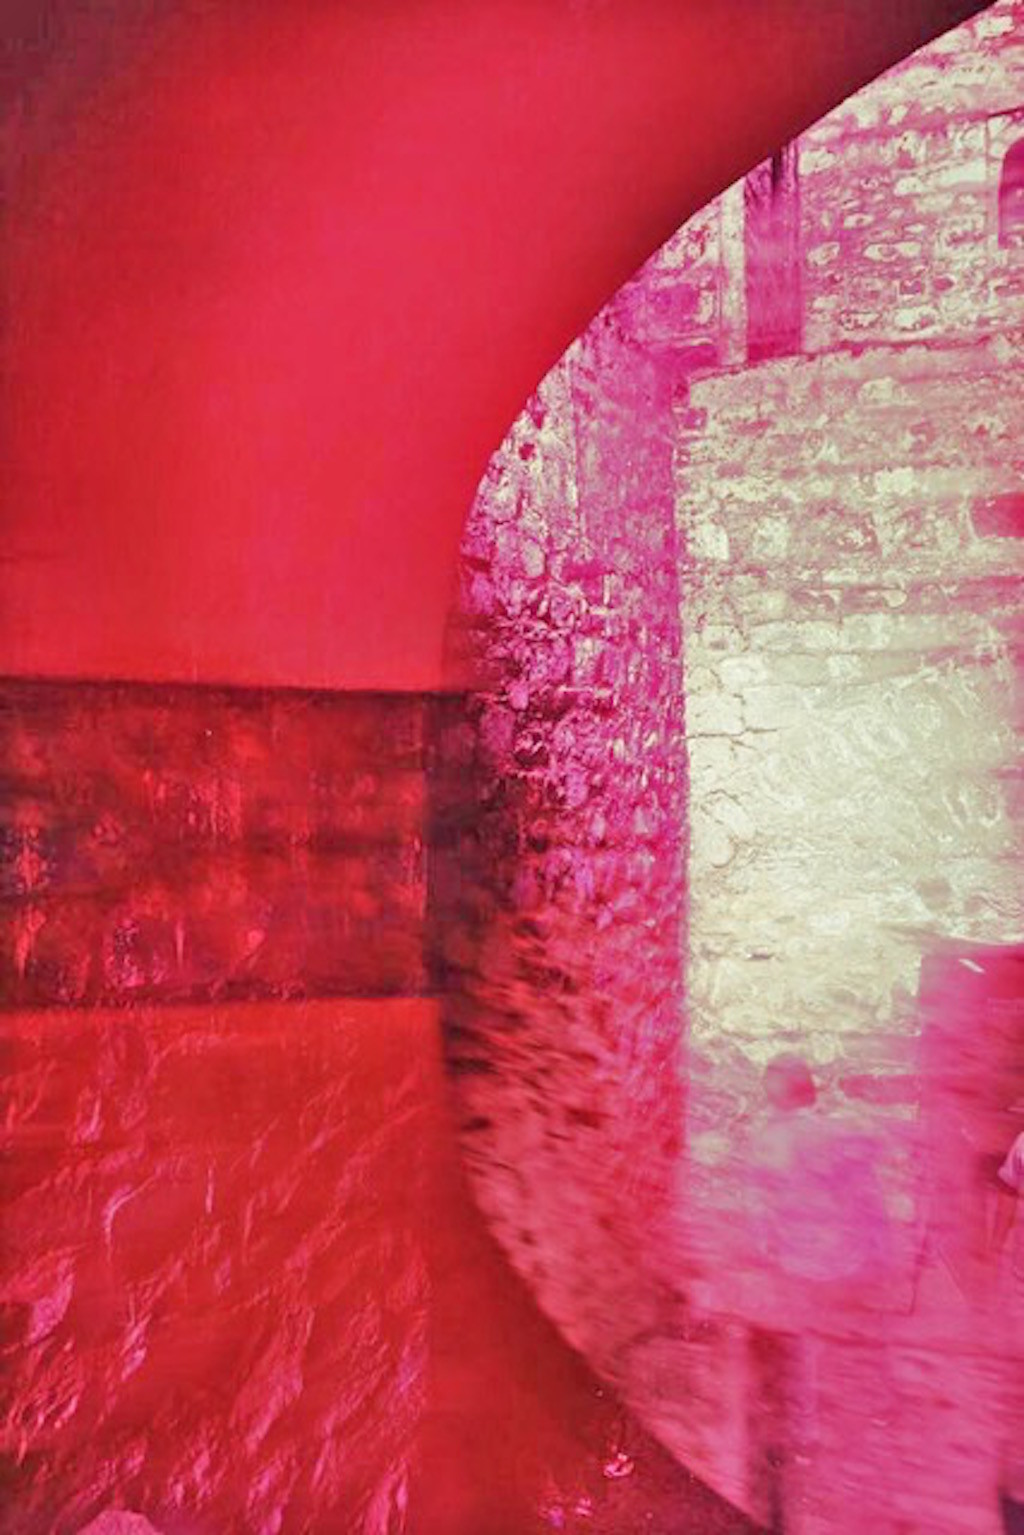 Agarsen Ki Baoli In Pink by Tanya Palta, Image Photography, Digital Print on Paper, Pink color